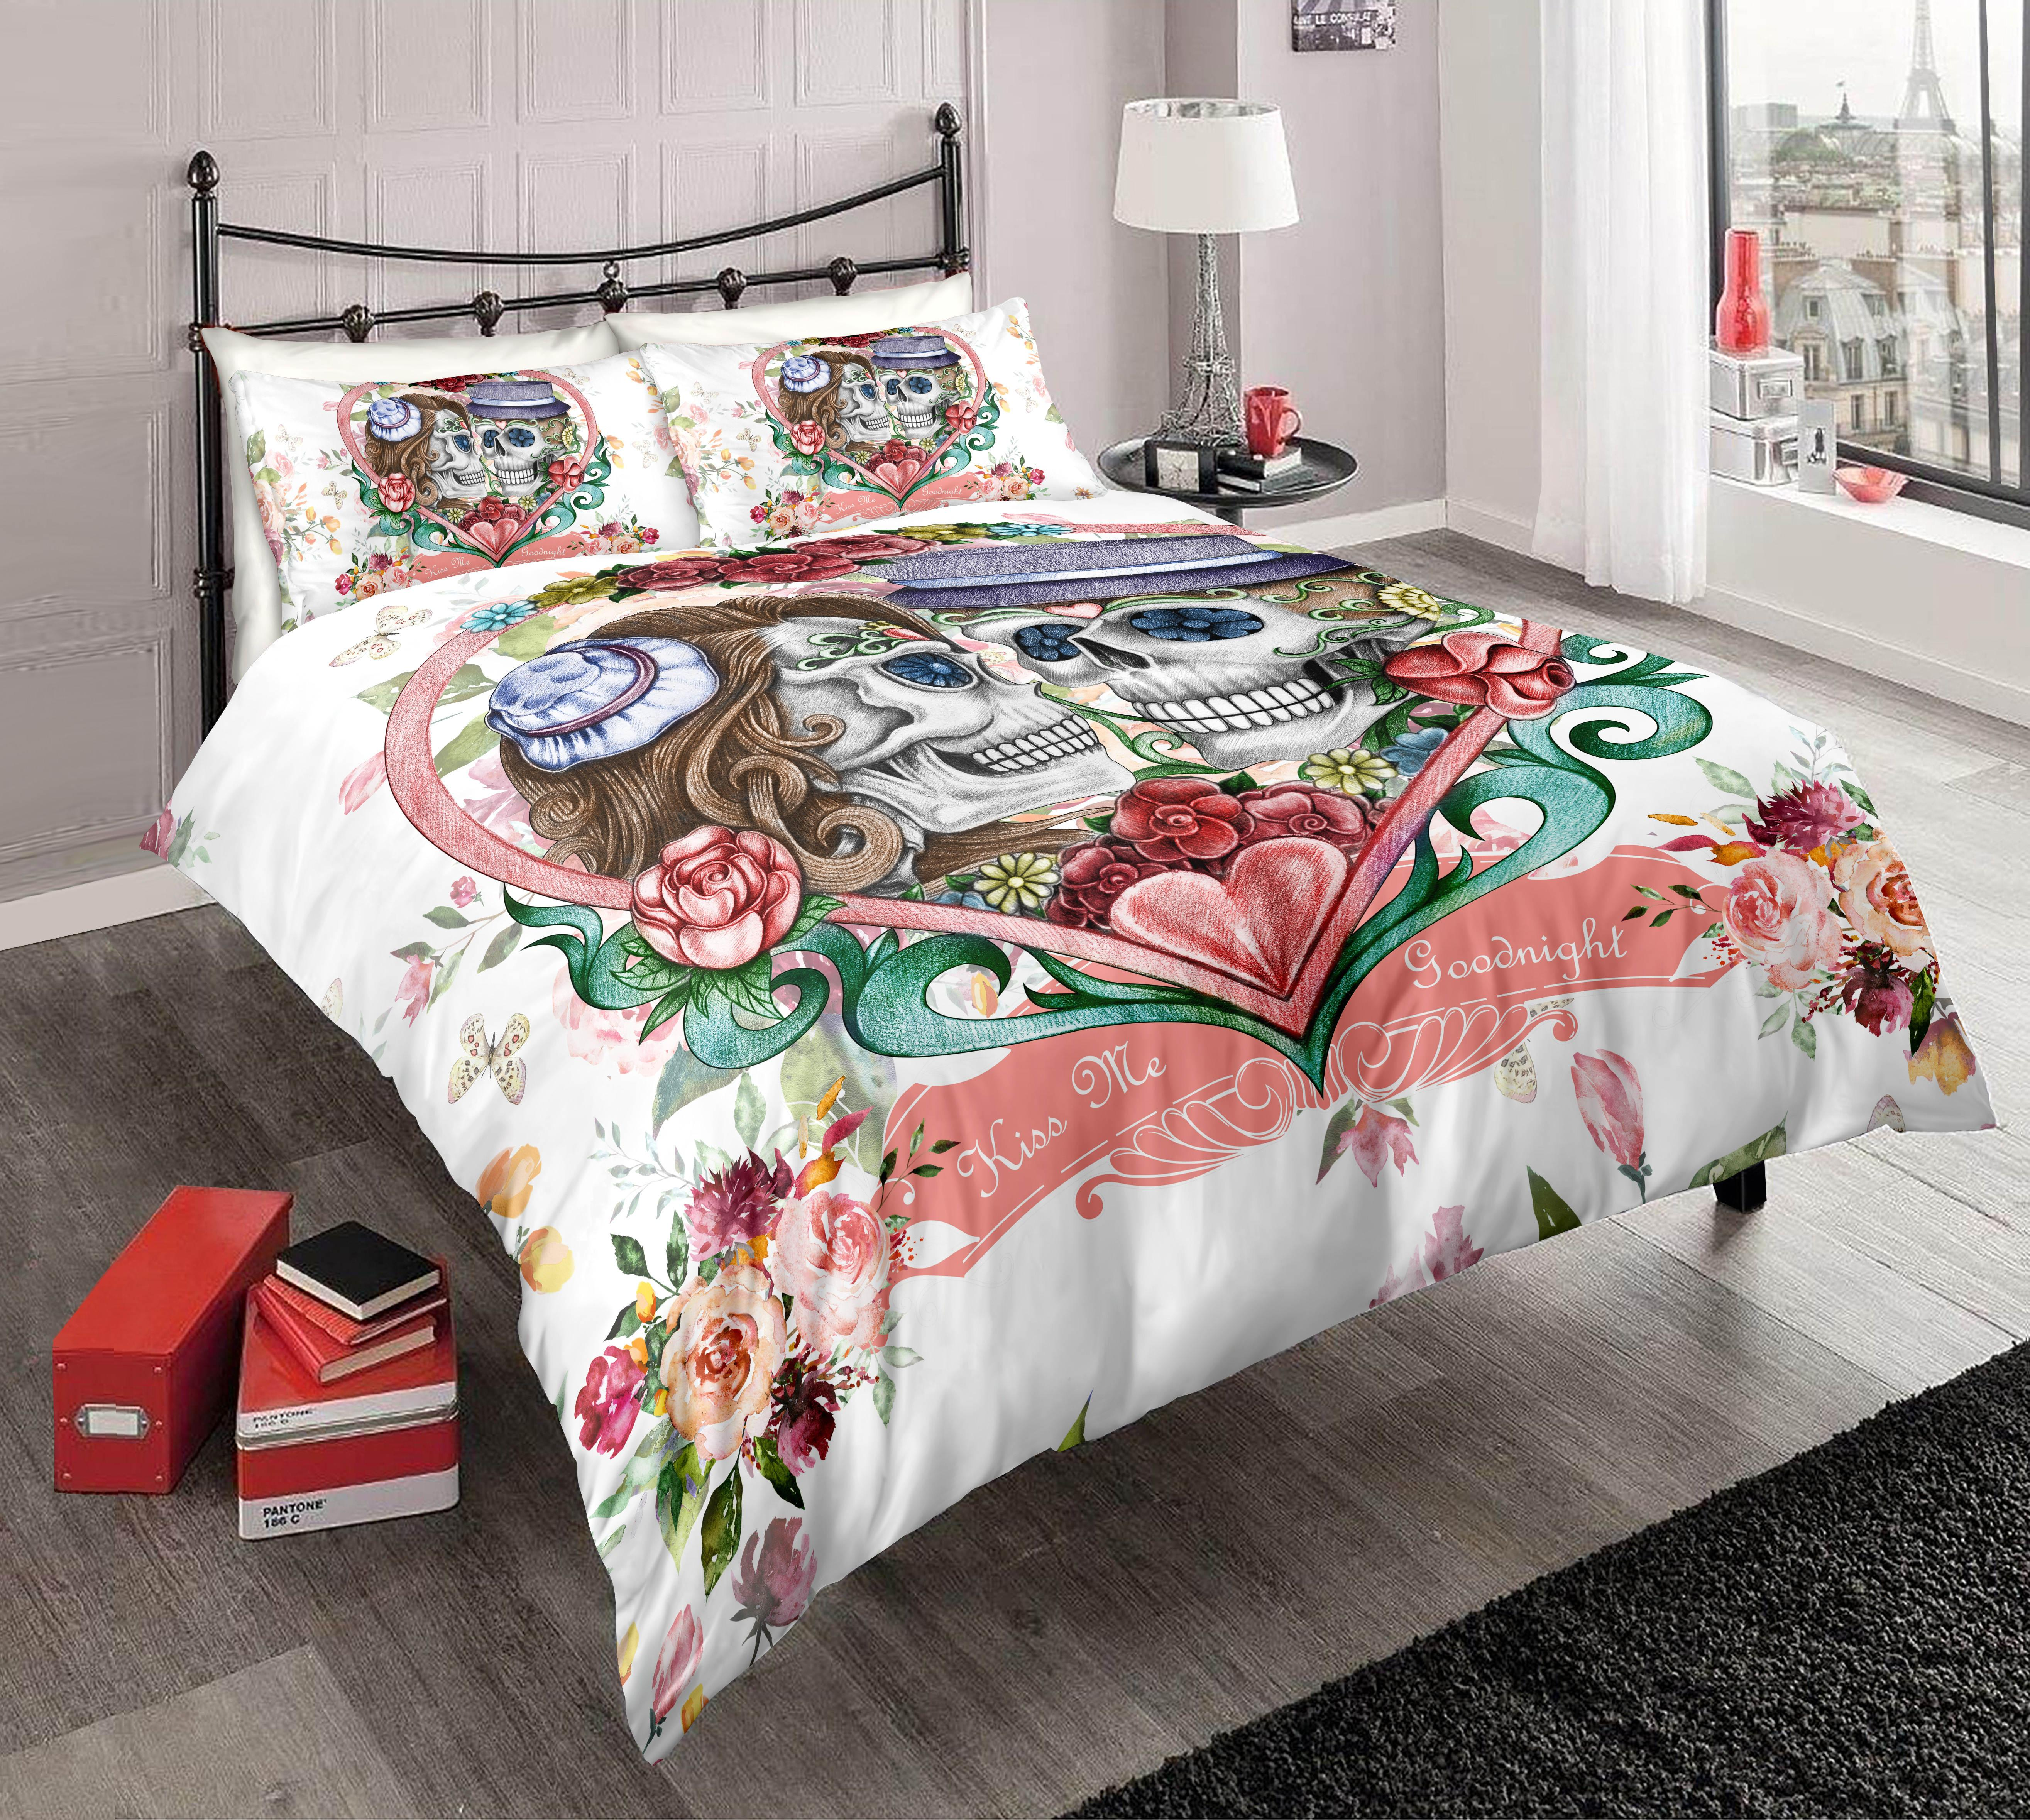 Good Night Kiss Duvet// Quilt Cover Bedding Set With Pillow Case All Size